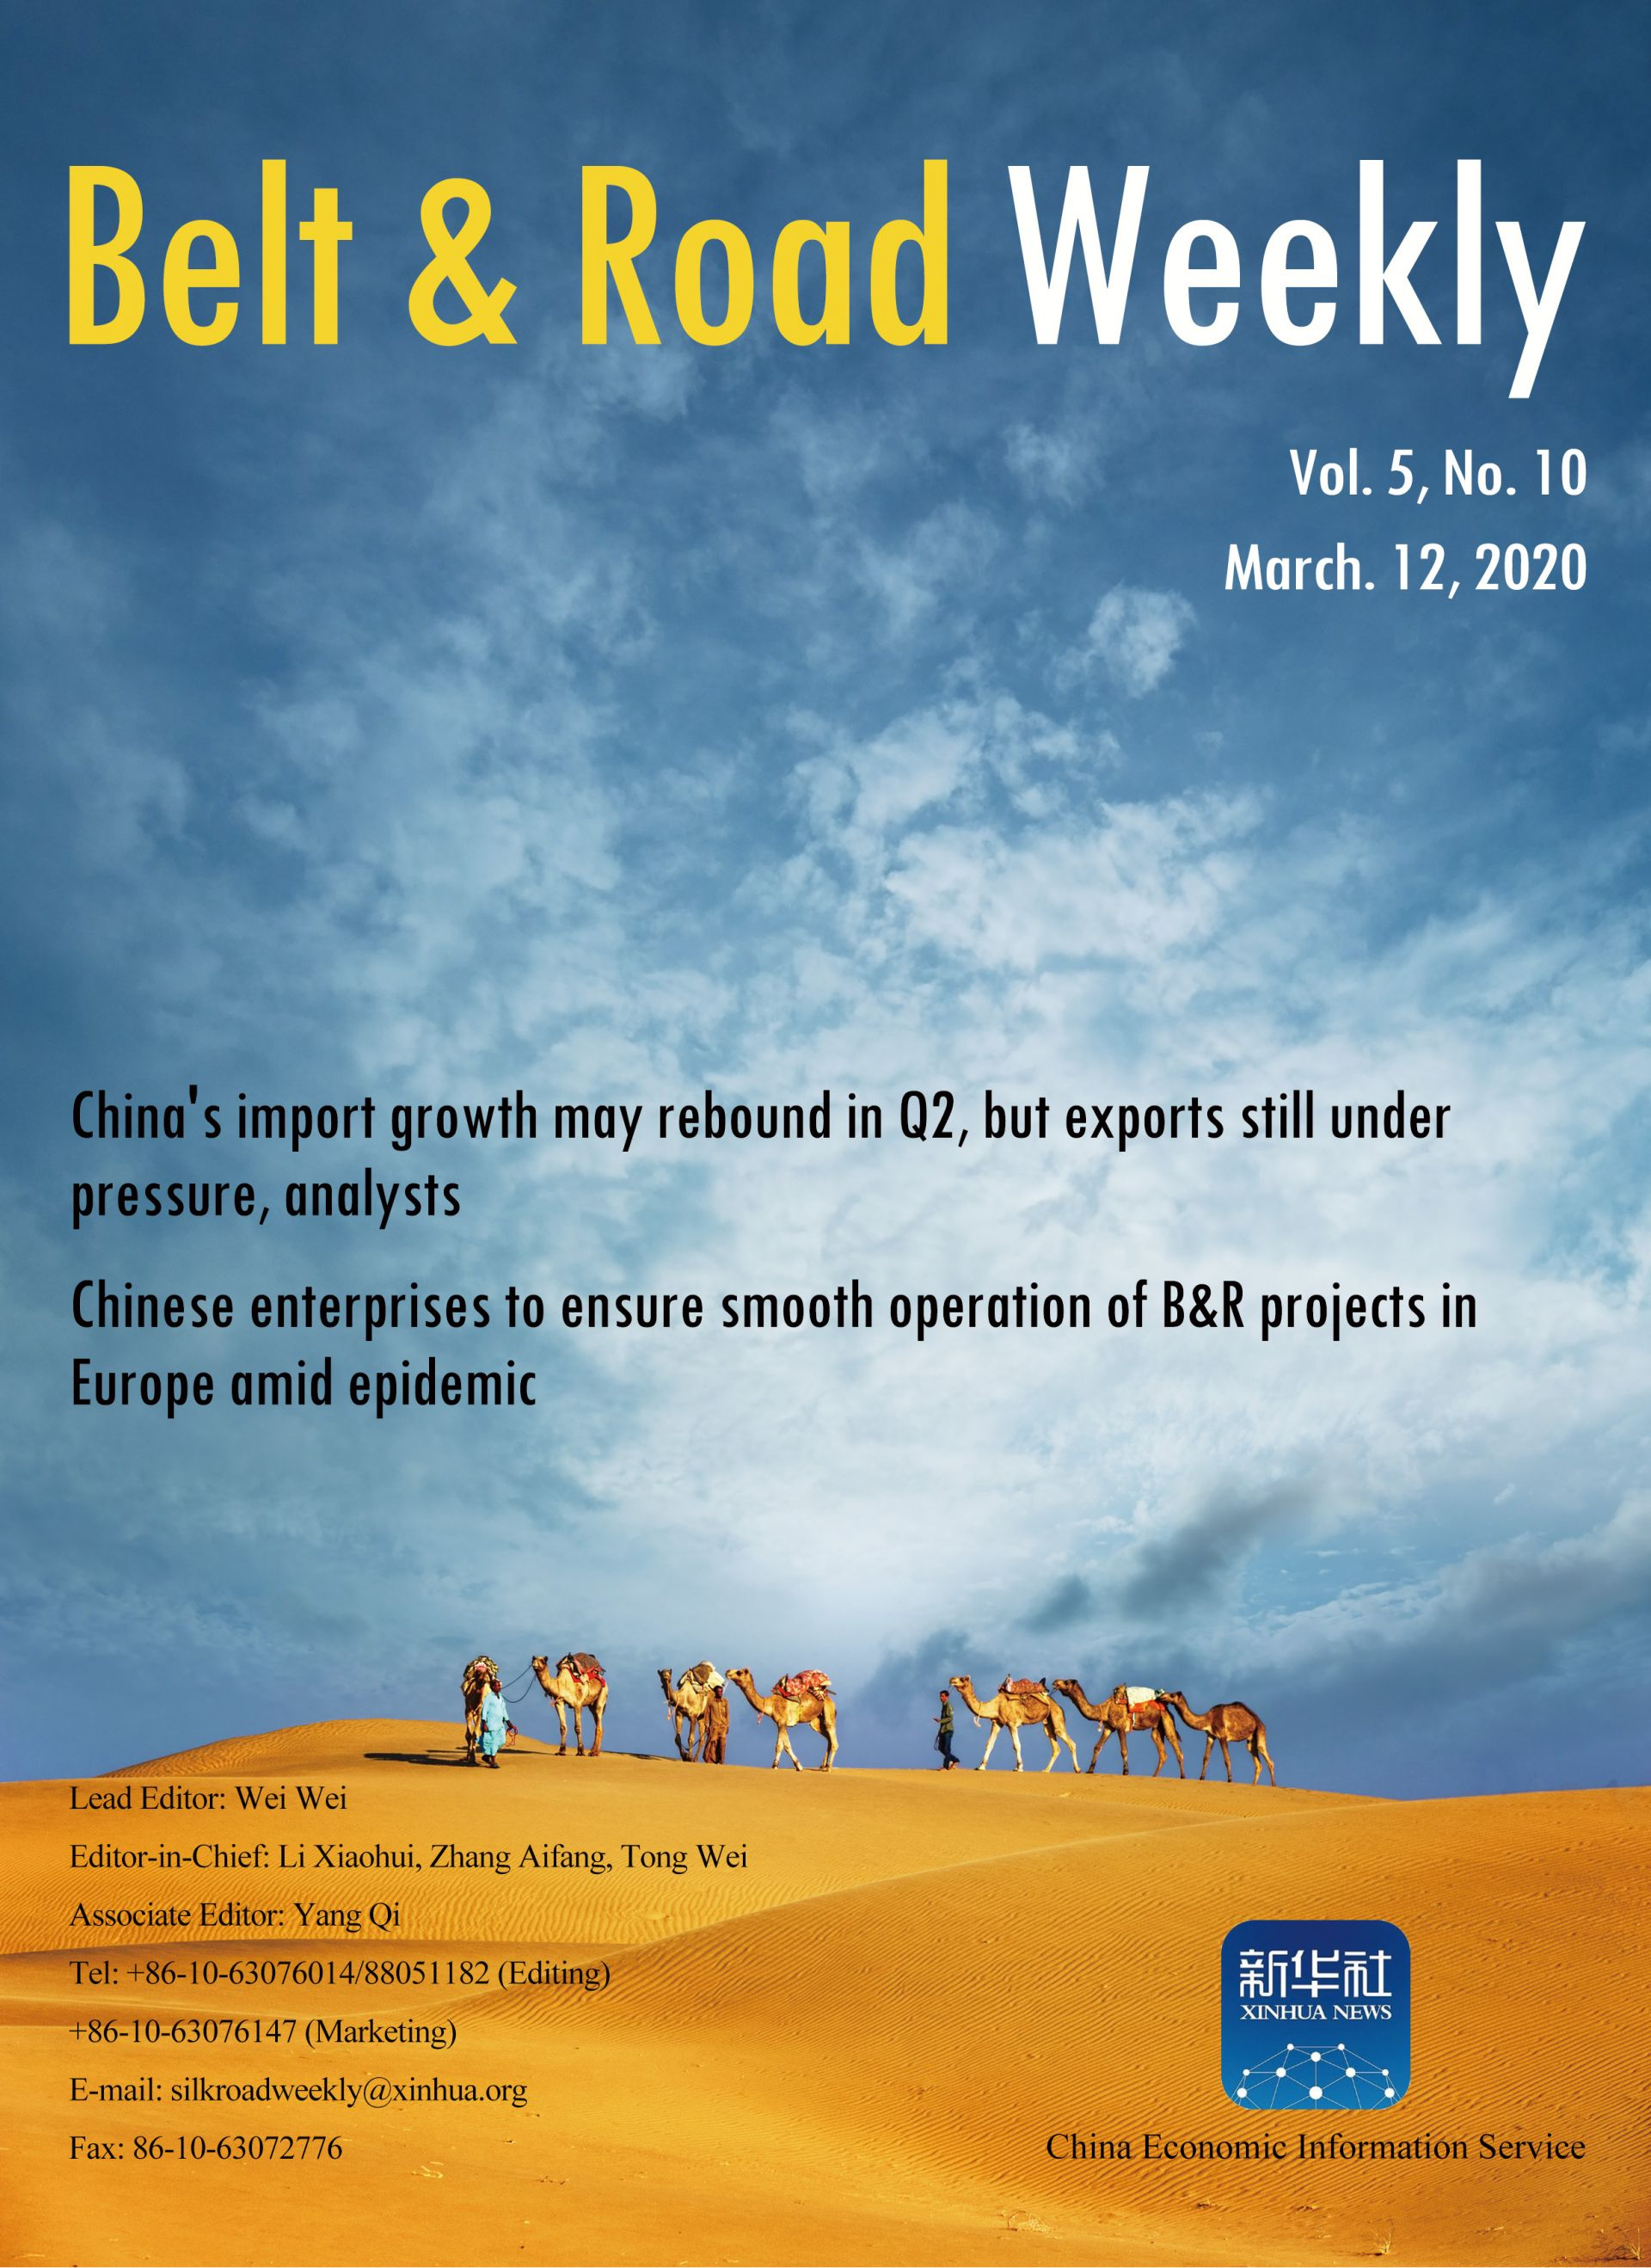 Belt & Road Weekly Vol.5 No. 10